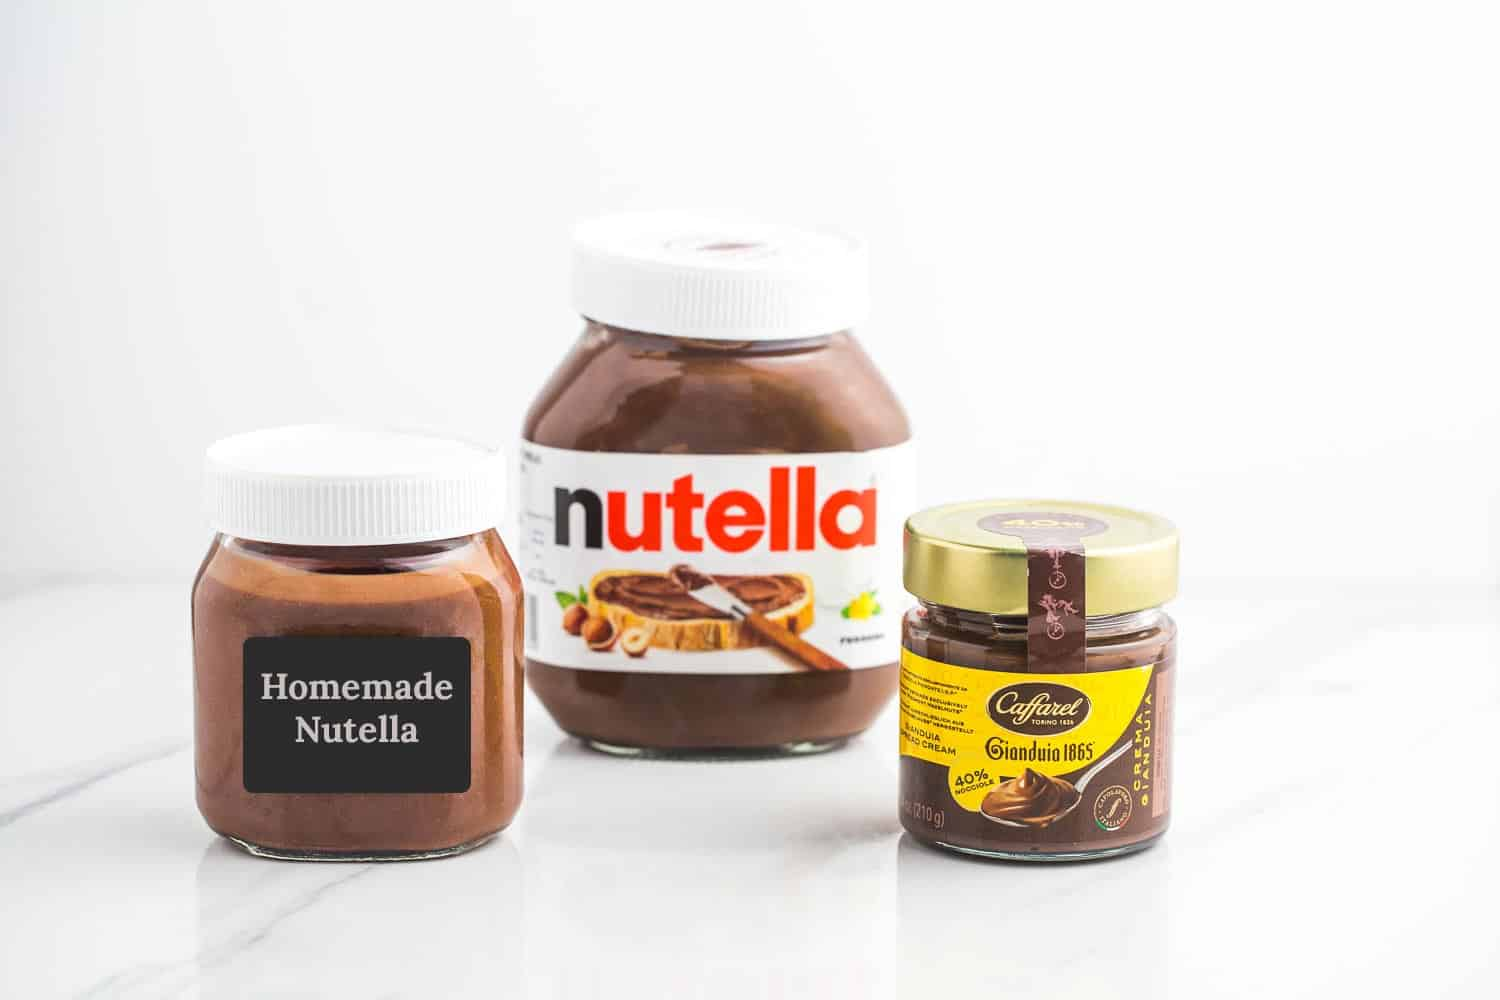 Homemade and store bought Nutella, and Gianduia